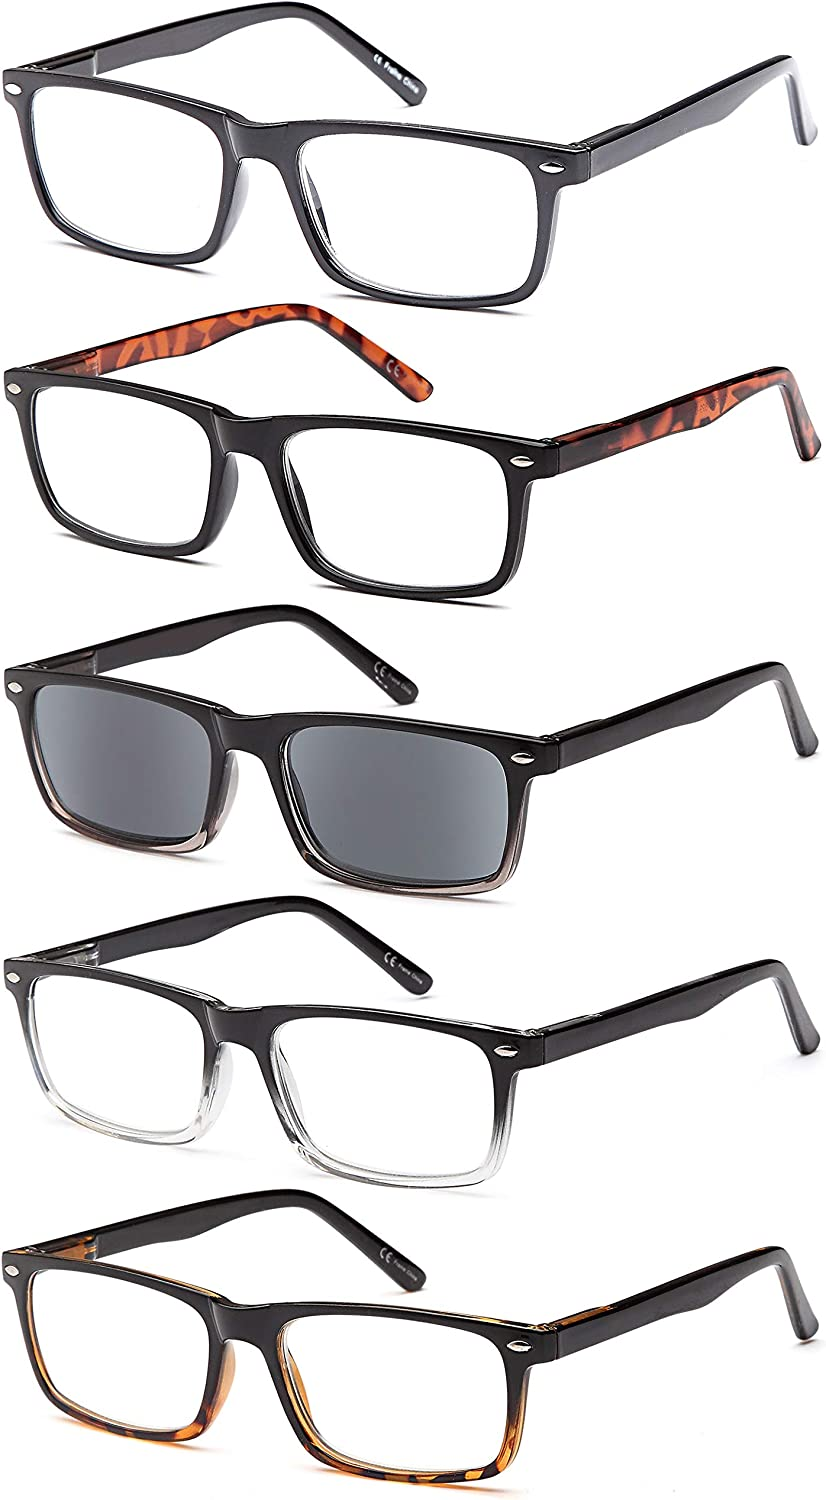 Gamma Ray Jacksonville Mall Max 67% OFF Men's Reading Glasses - Men 5 Readers for Pairs Incl